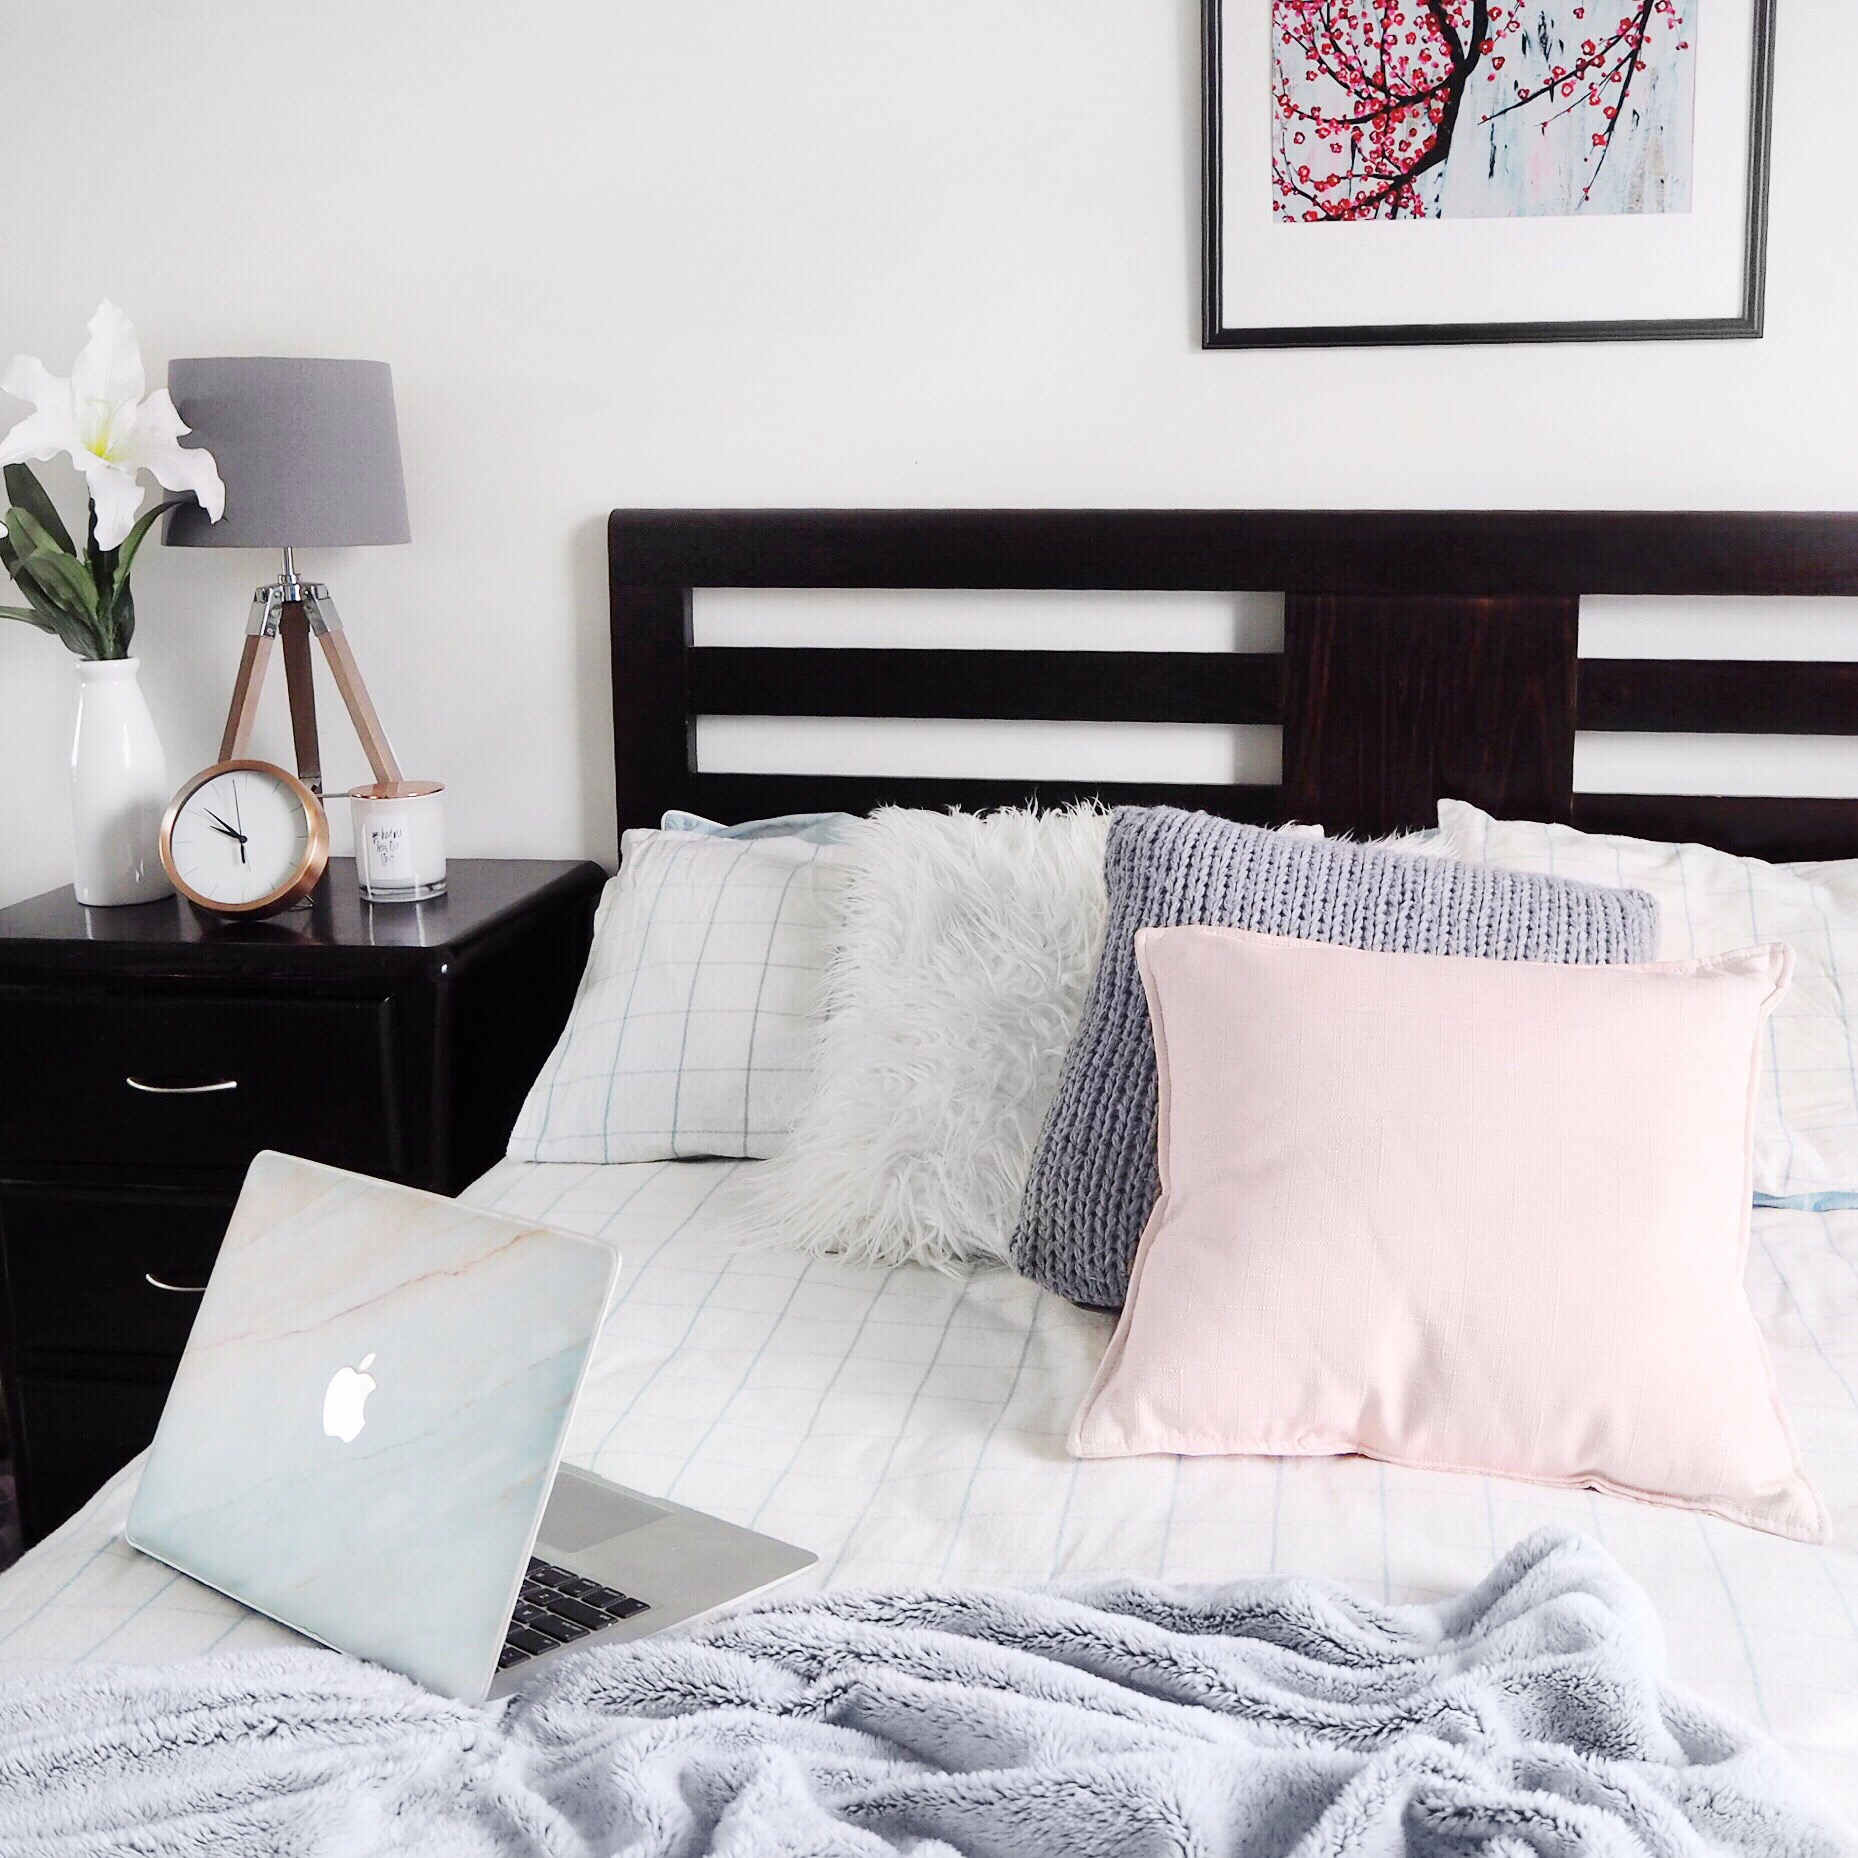 8 Blush Amp Grey Home Decor Items For The Bedroom